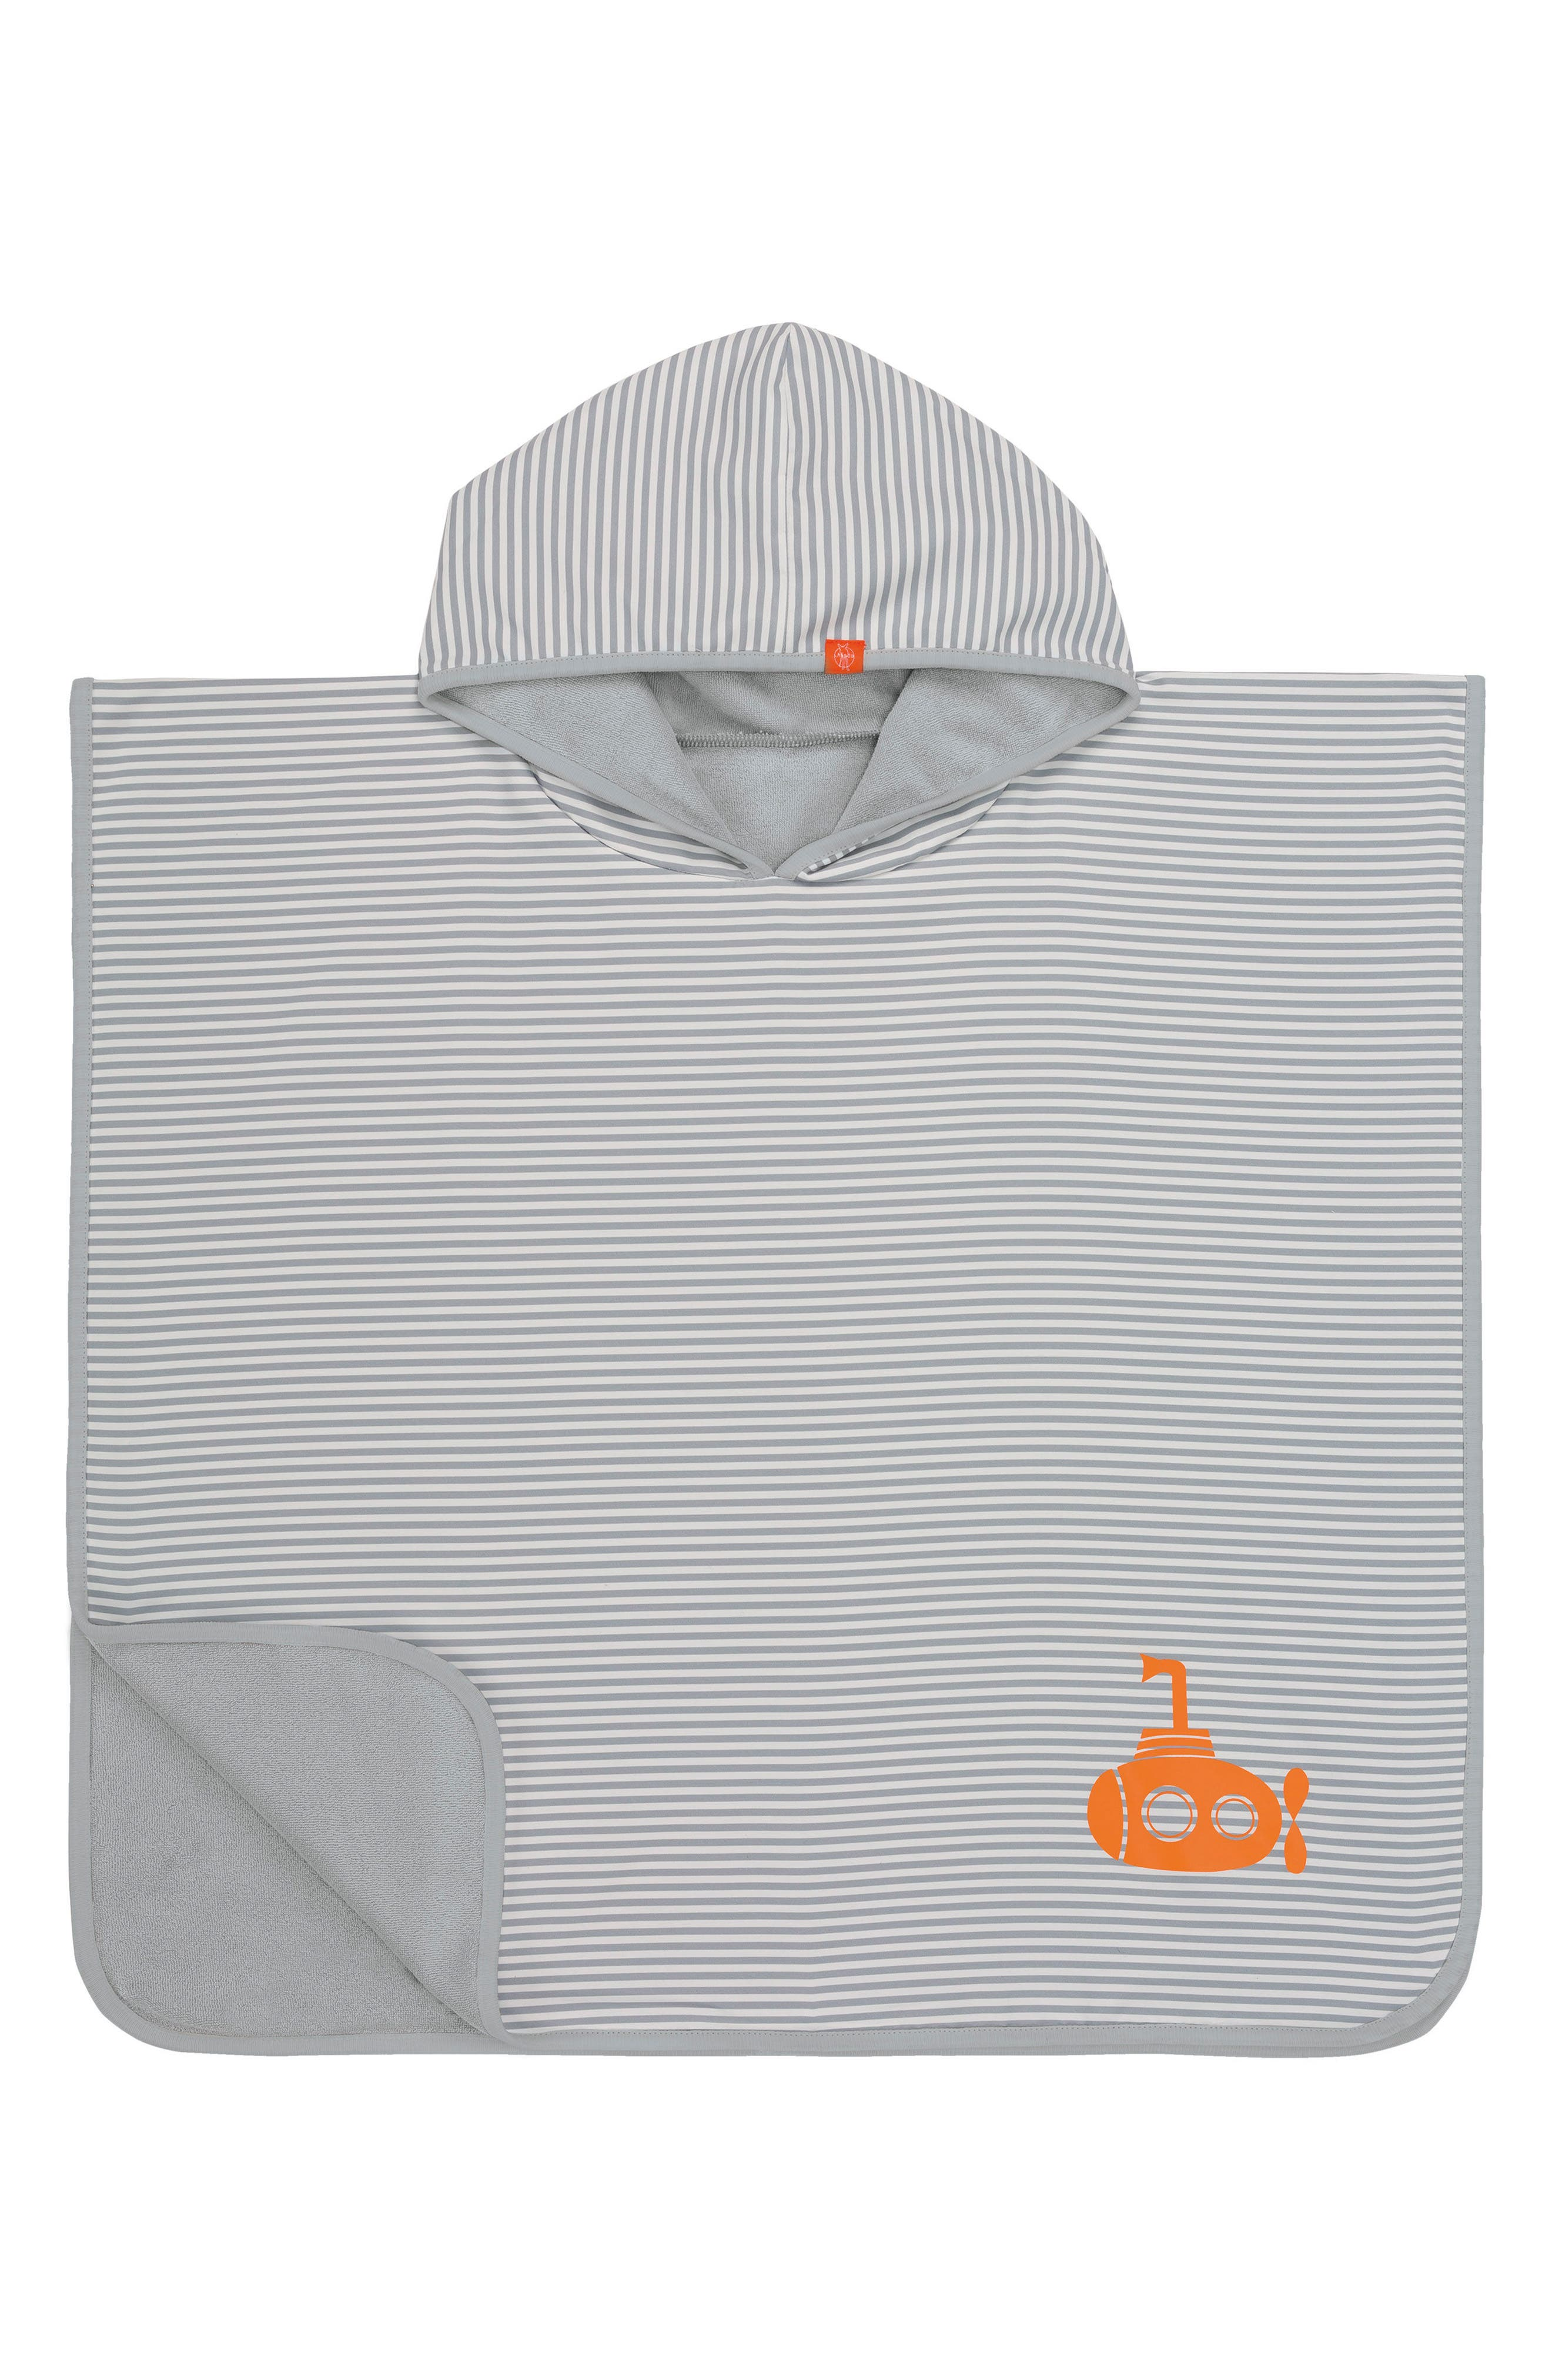 Main Image - Lässig Submarine Hooded Beach Poncho (Baby)